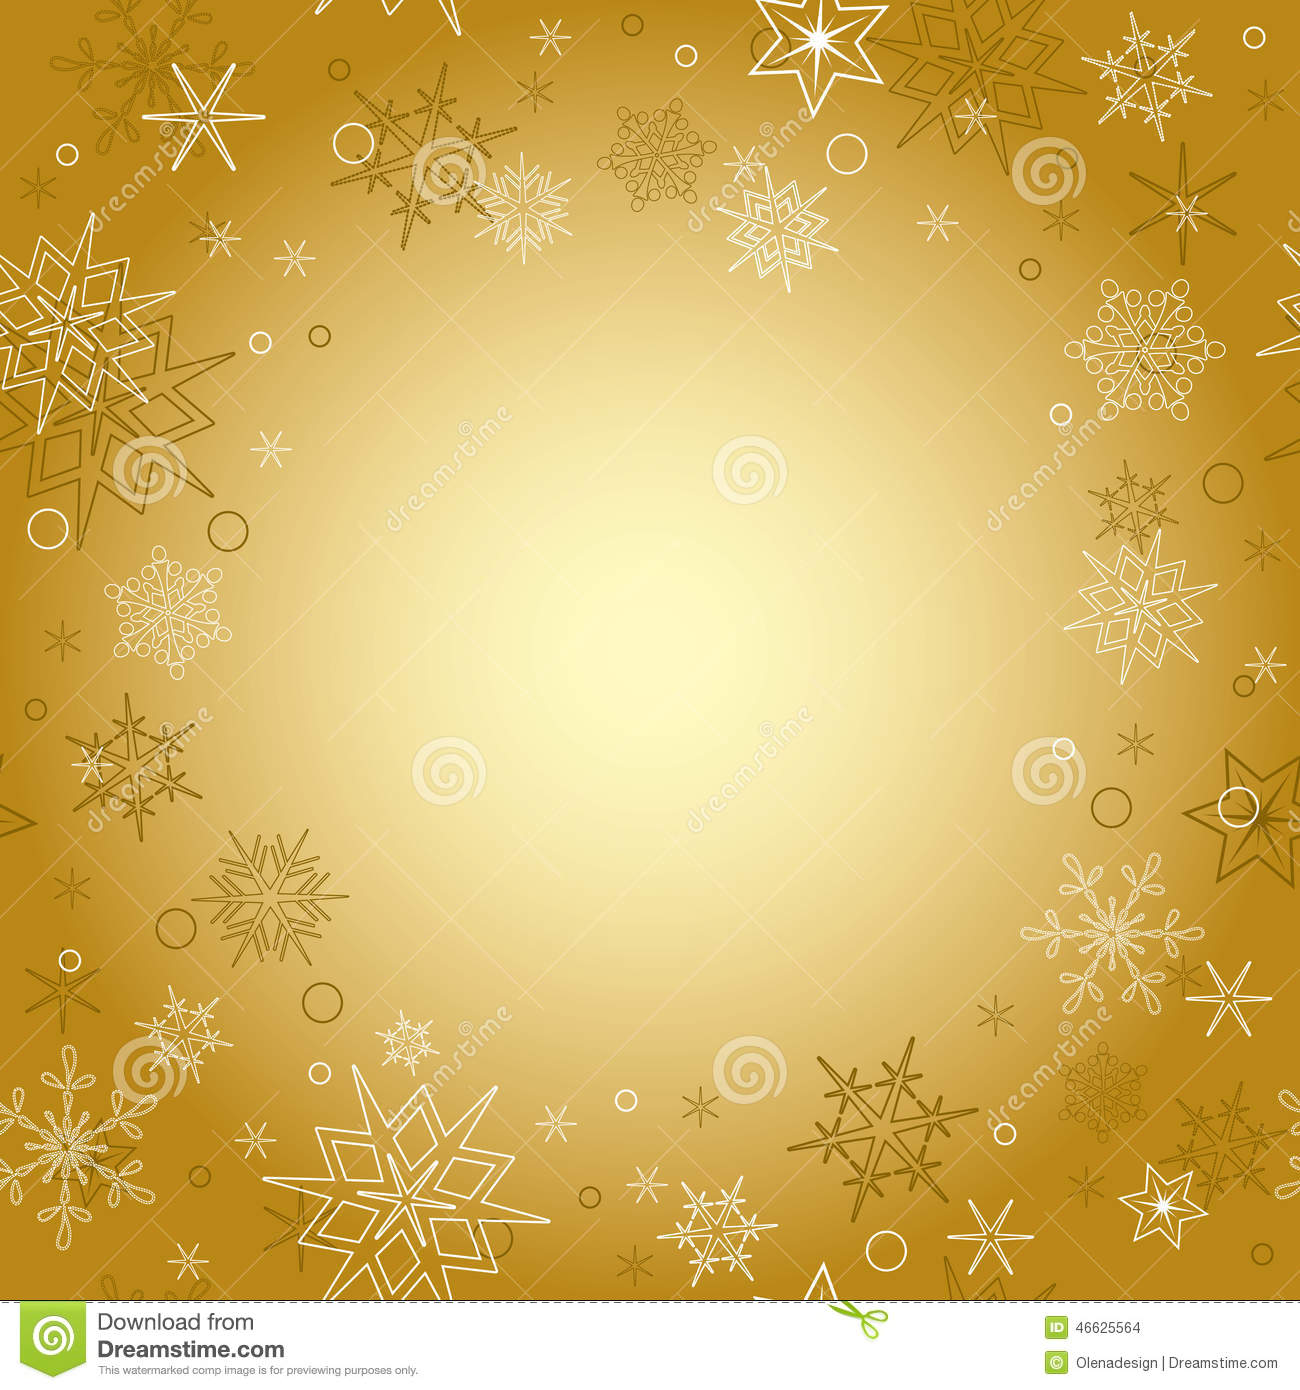 Christmas Card Background.Gold Background Vector Christmas Card With Snowflakes